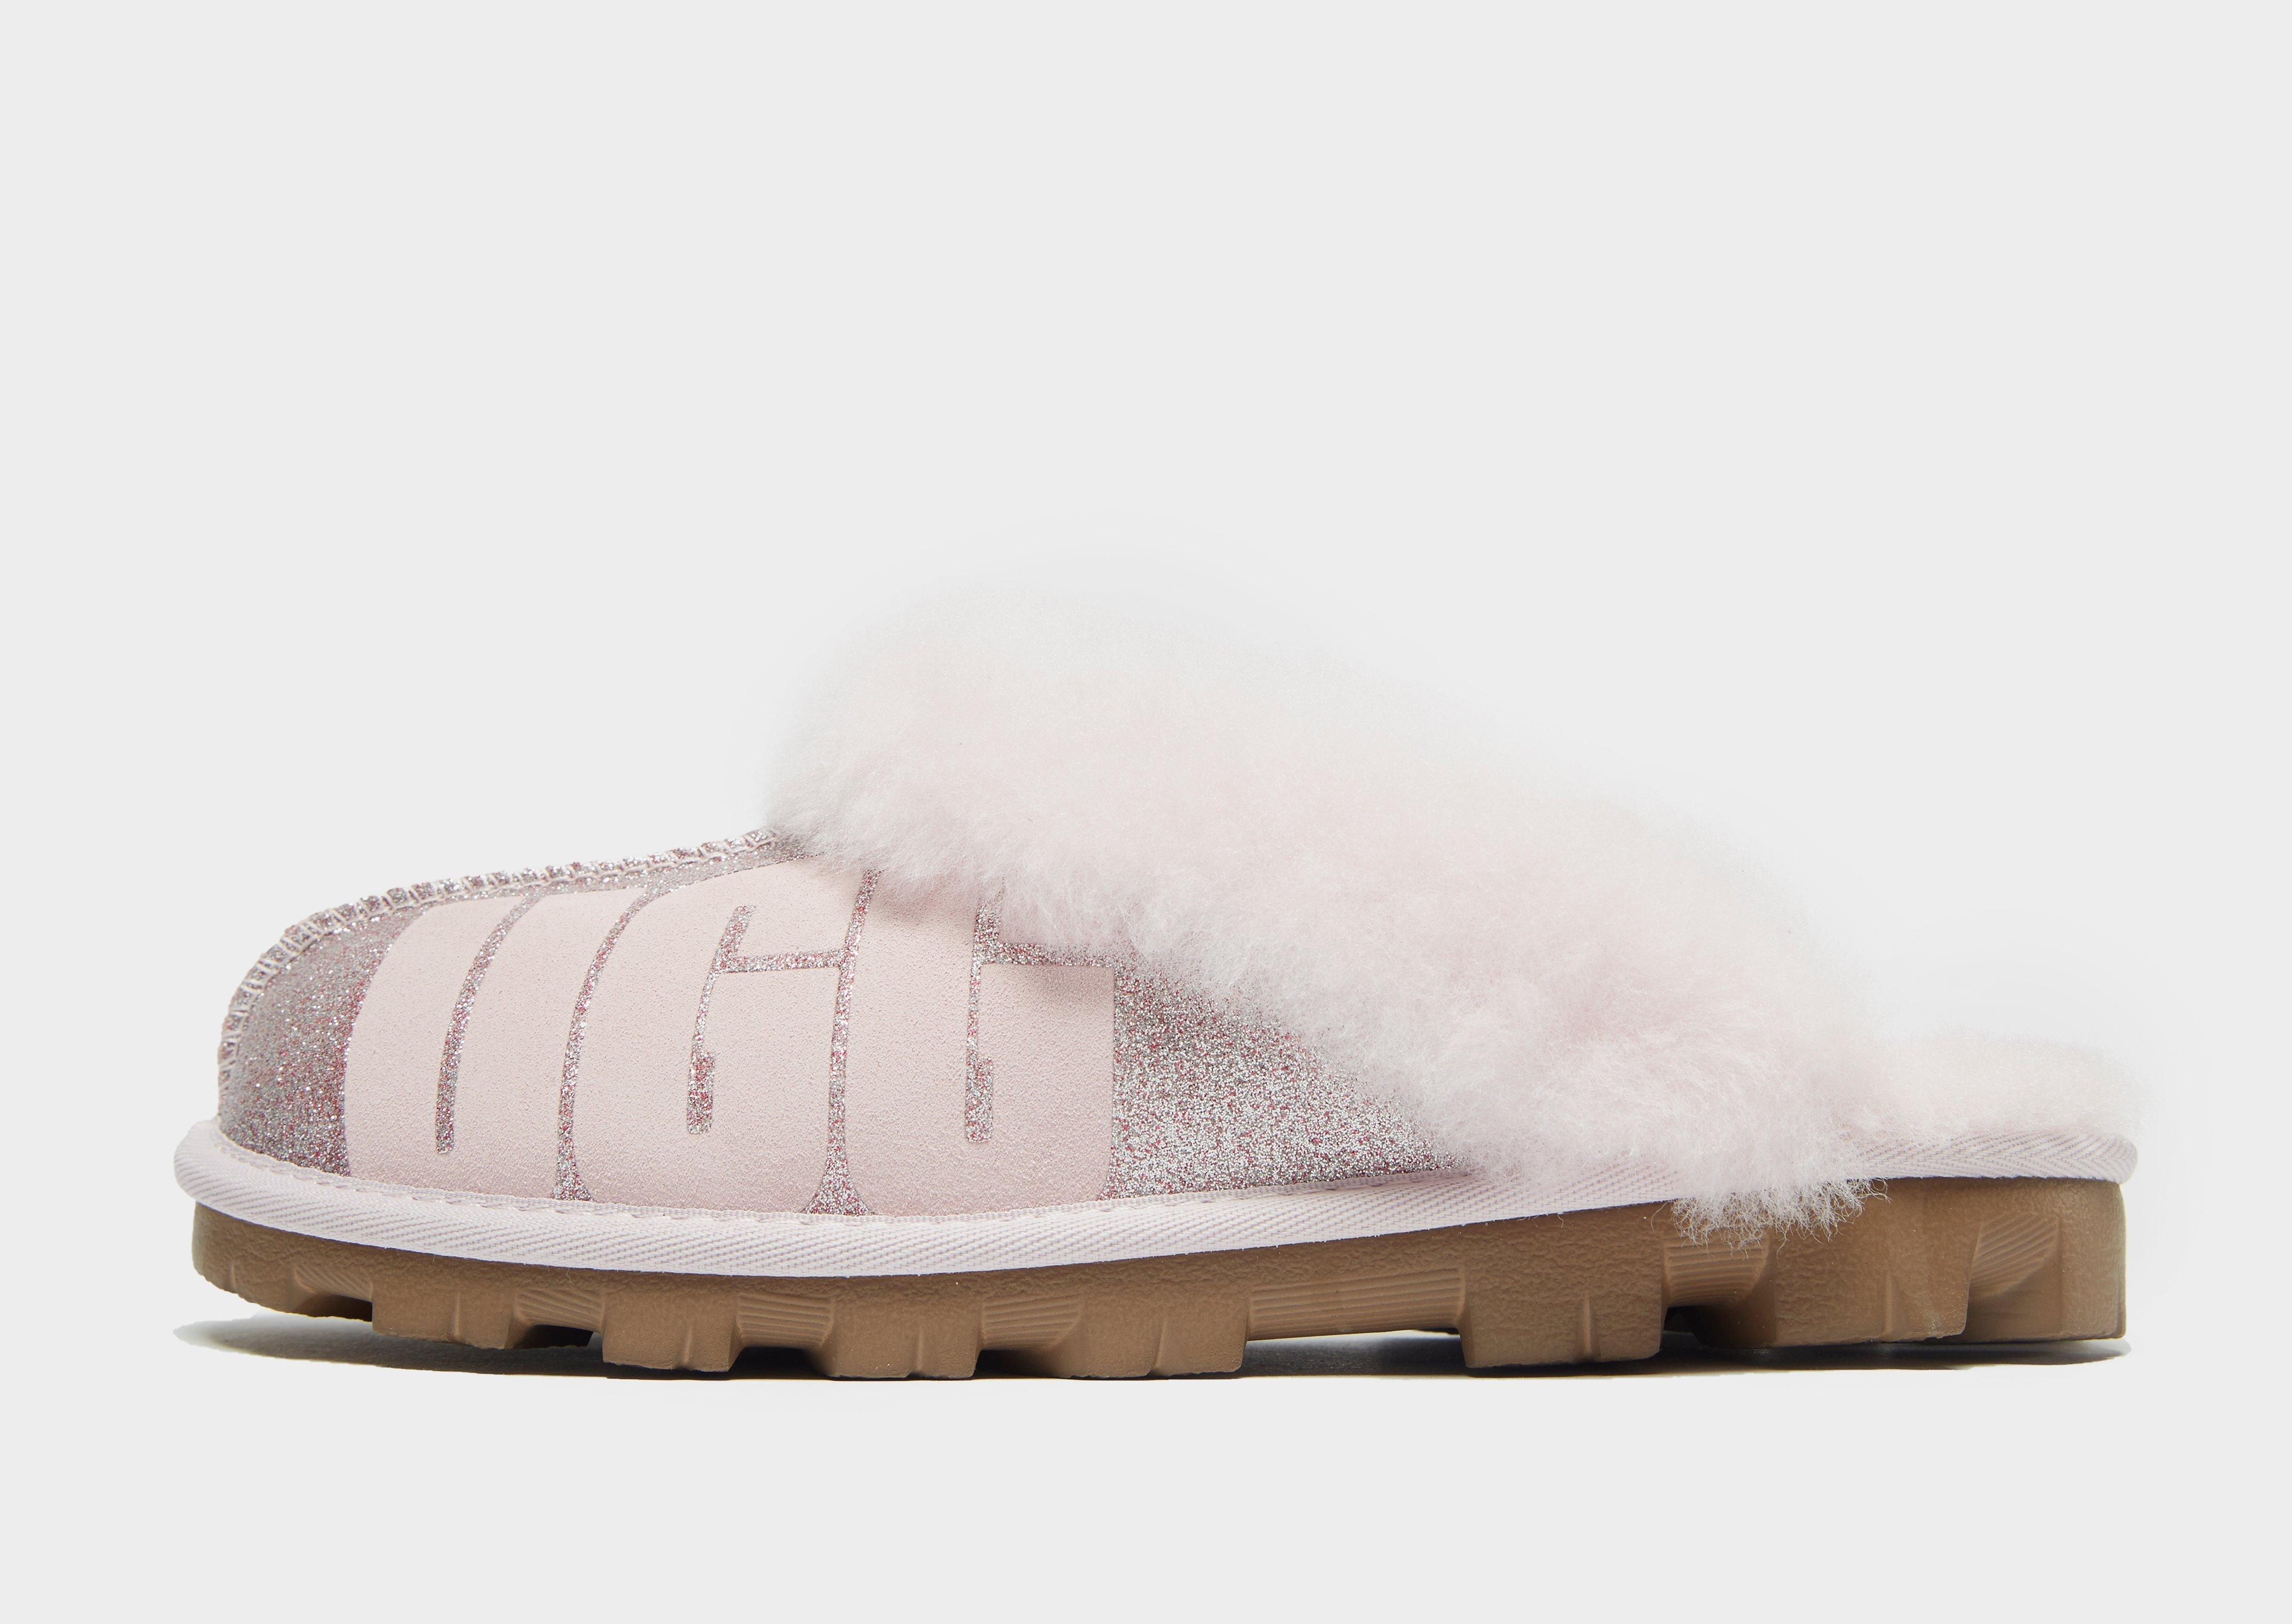 86a6f1d4276 Ugg Pink Coquette Sparkle Slippers